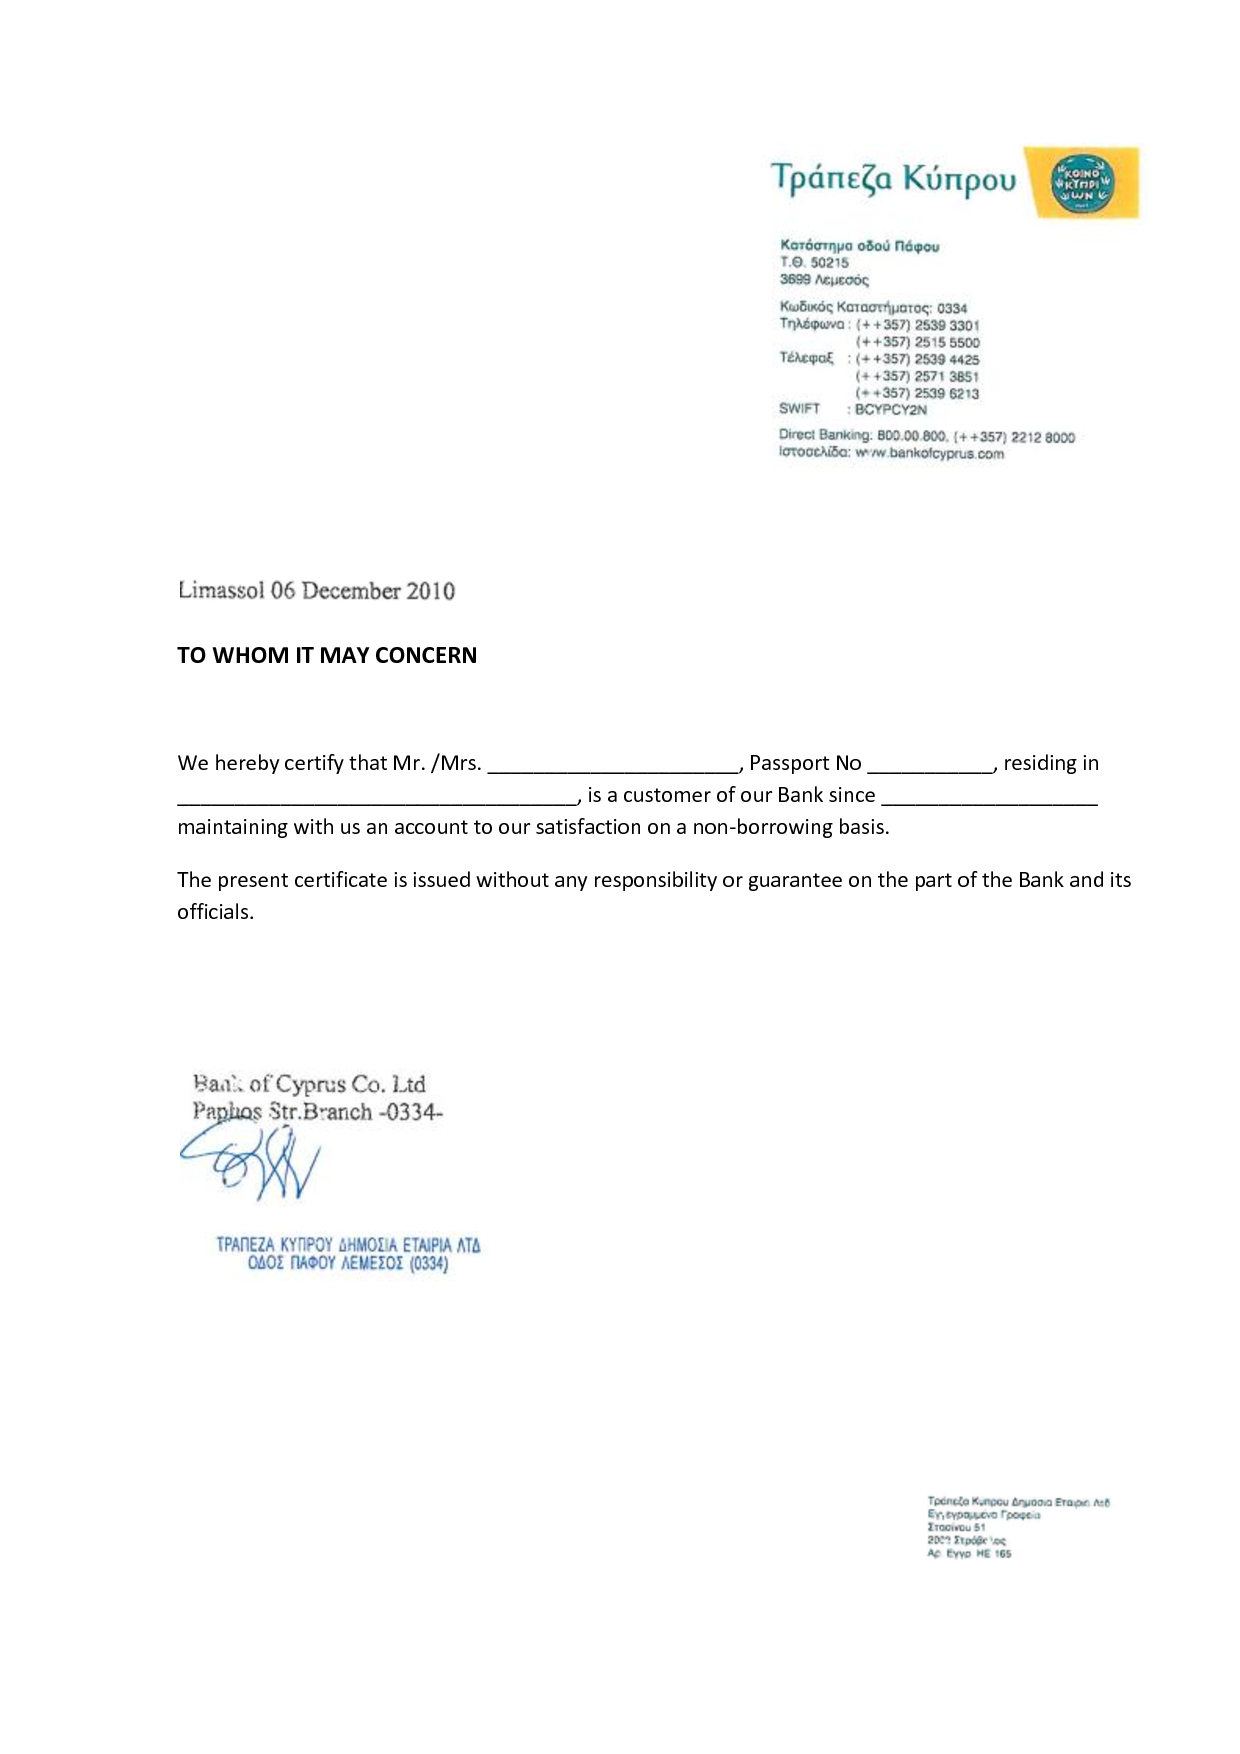 Reference Letter Format For Bank Account Opening